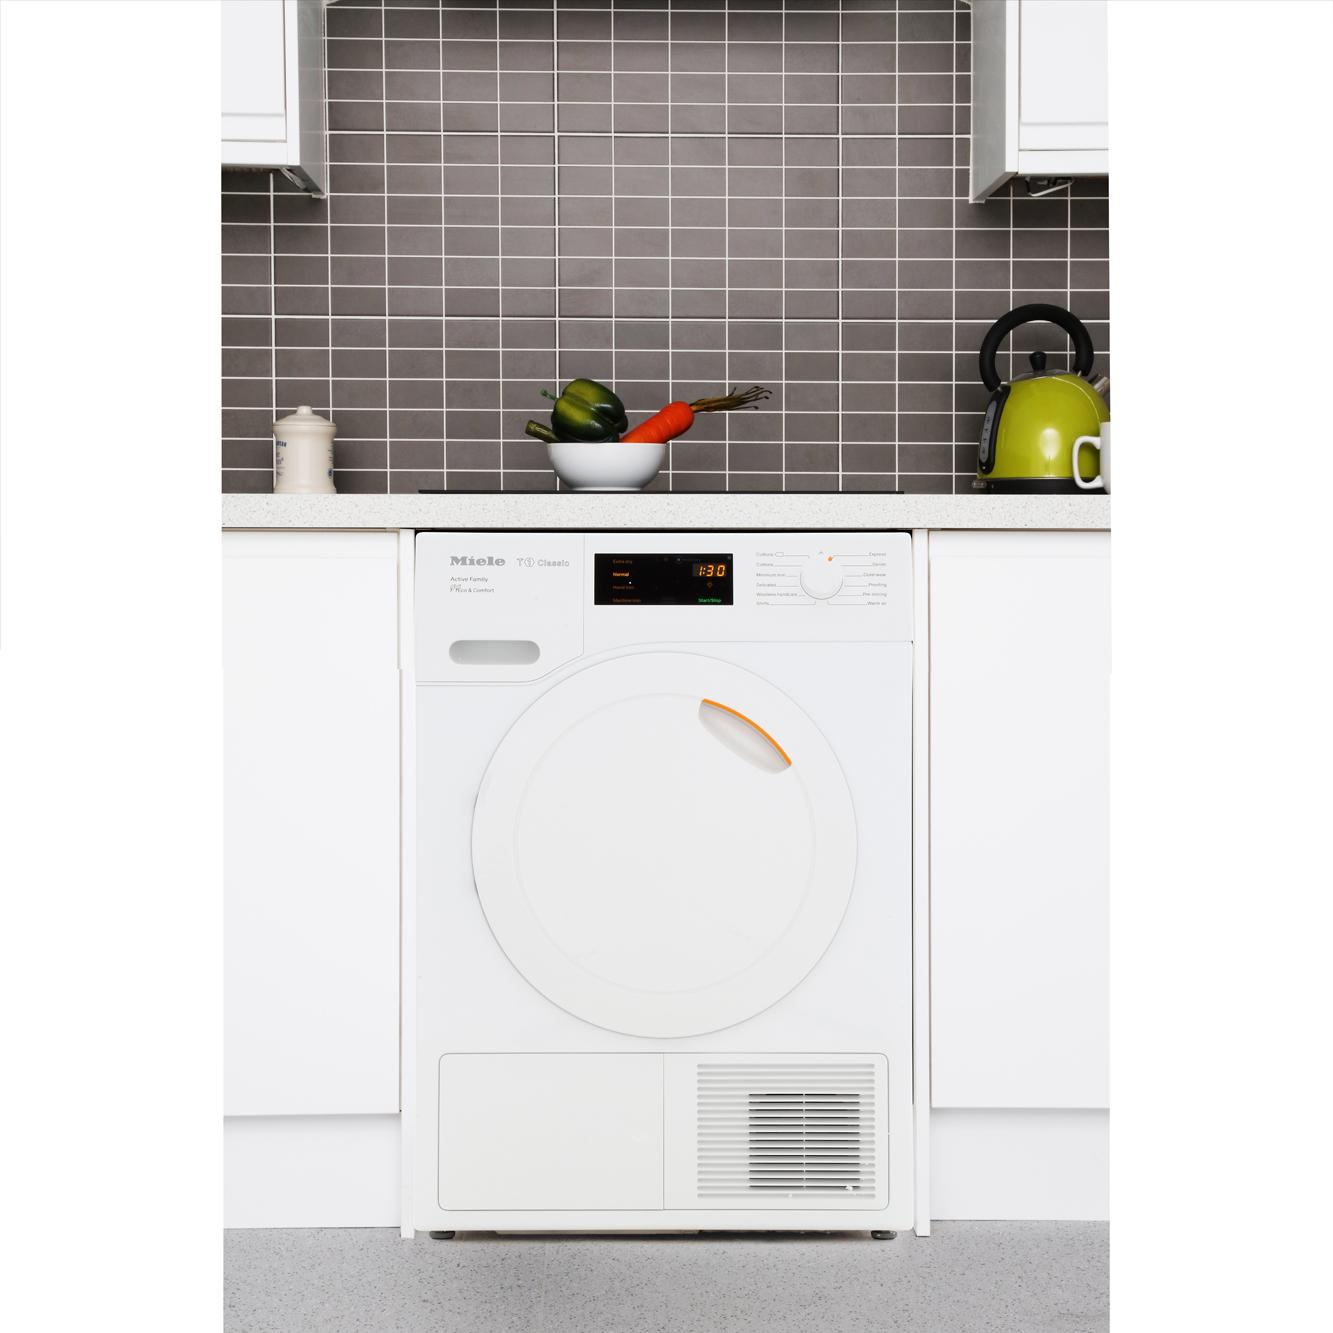 buy miele t1 classic tdd230 white condenser dryer with heat pump technology tdd230white. Black Bedroom Furniture Sets. Home Design Ideas